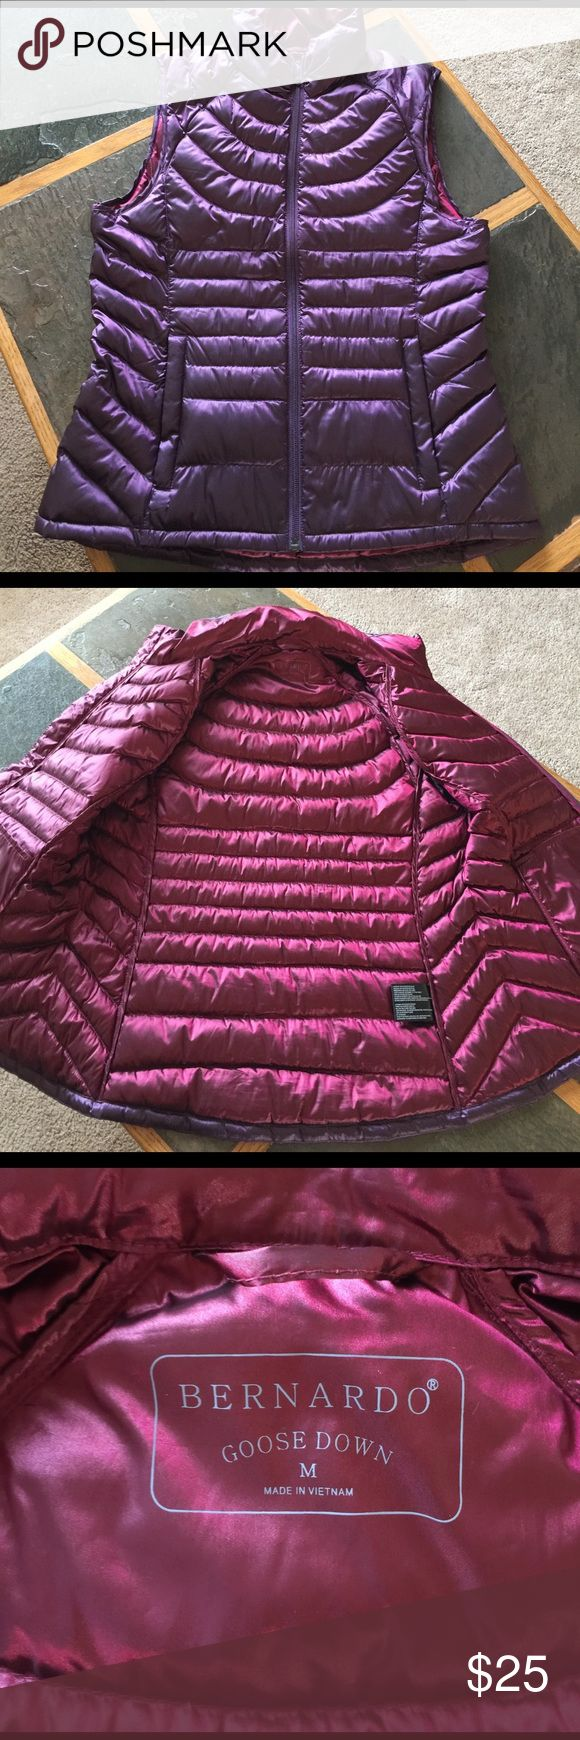 Bernardo Puffer Jacket. Used like New. Super light weight. Great for cool but not super cold days! Perfect for fall or spring. Armpit to armpit roughly 20 inches. Roughly 25 inches in length. Bernardo Jackets & Coats Puffers